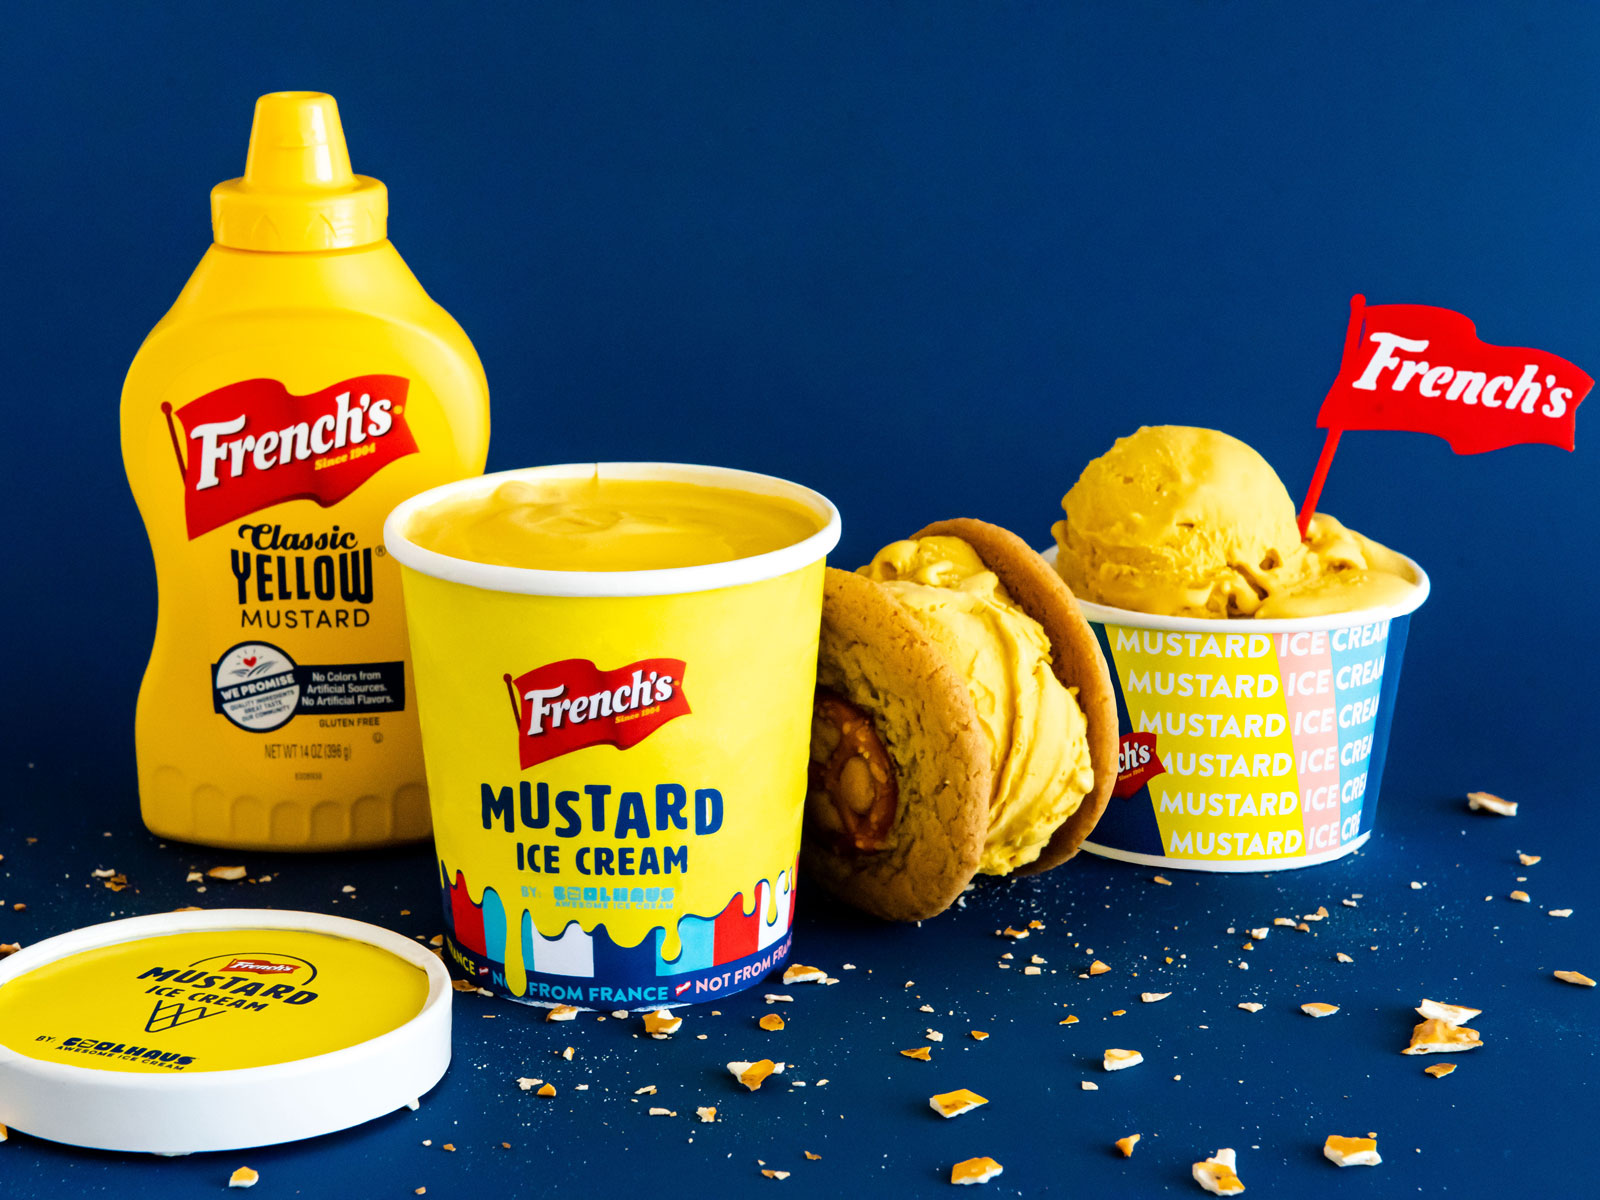 Ice-Cream-Frenchs-Mustard-FT-Blog0719.jpg